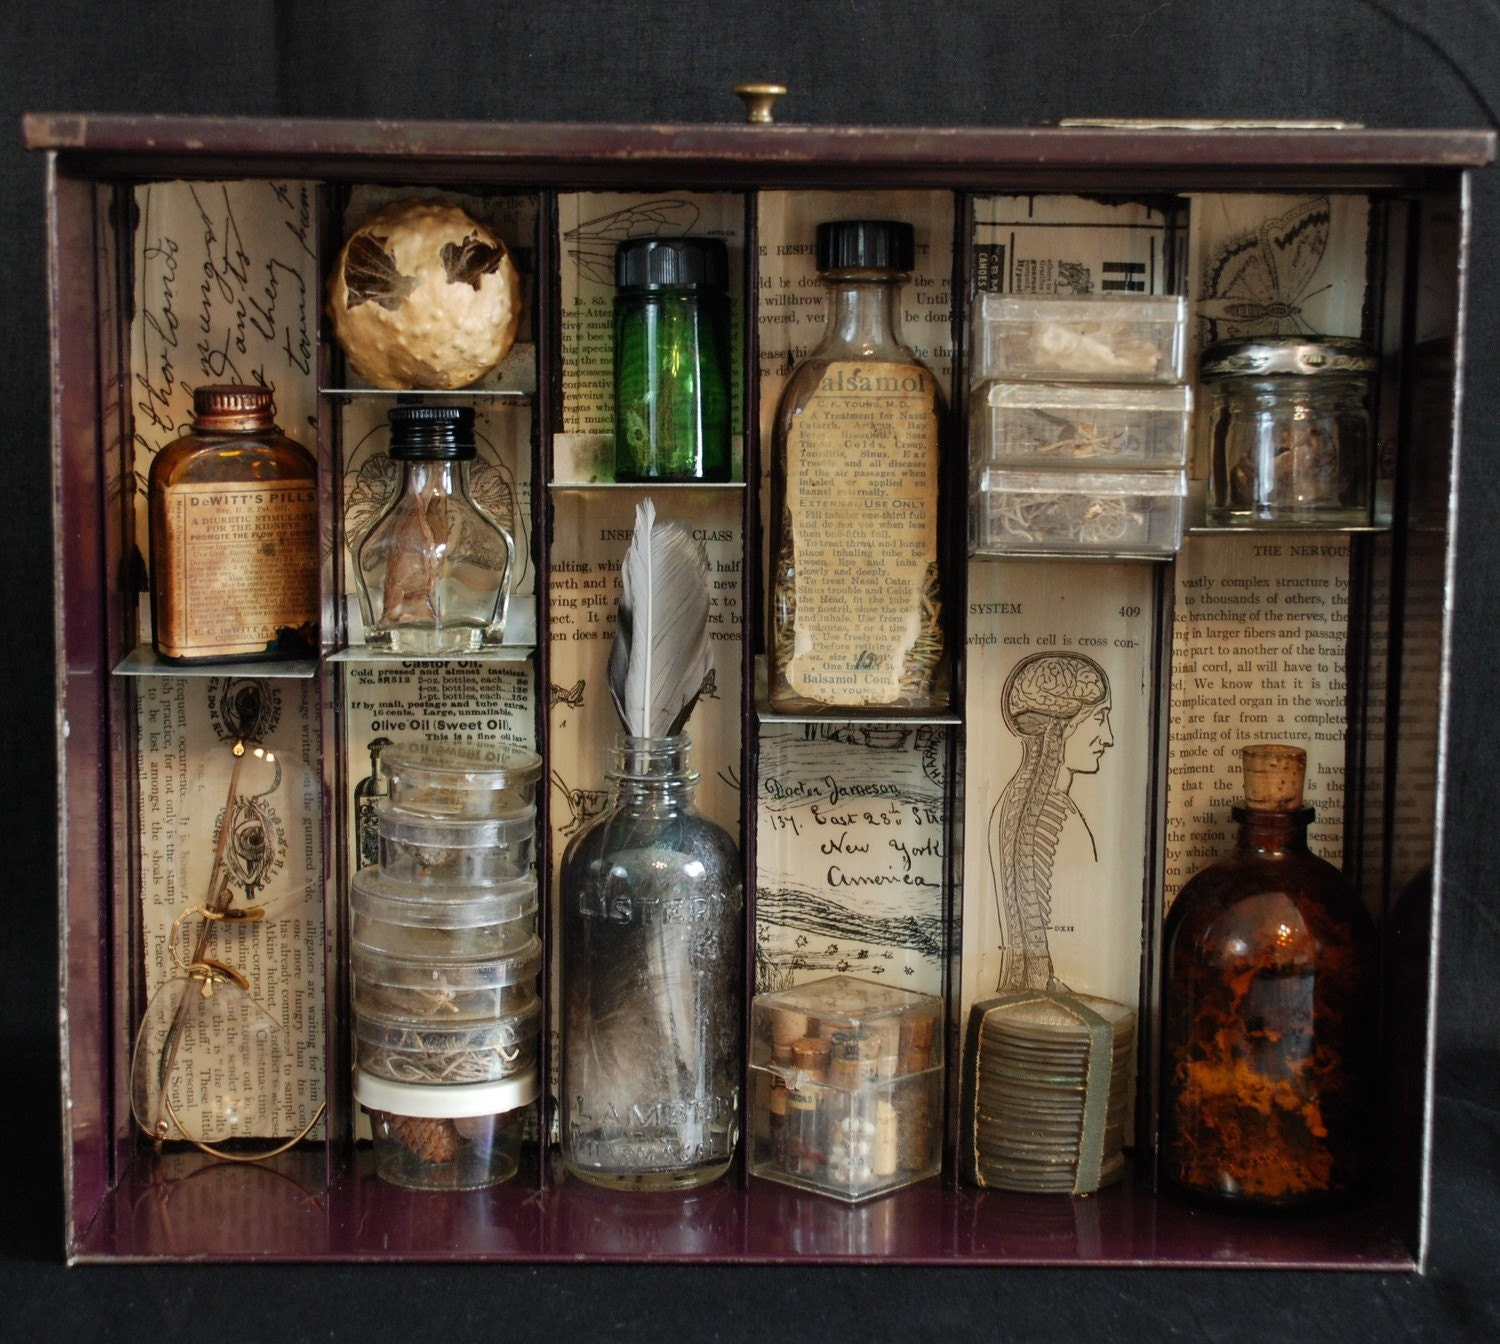 Apothecary Mixed Media Shadowbox Assemblage Complimentary